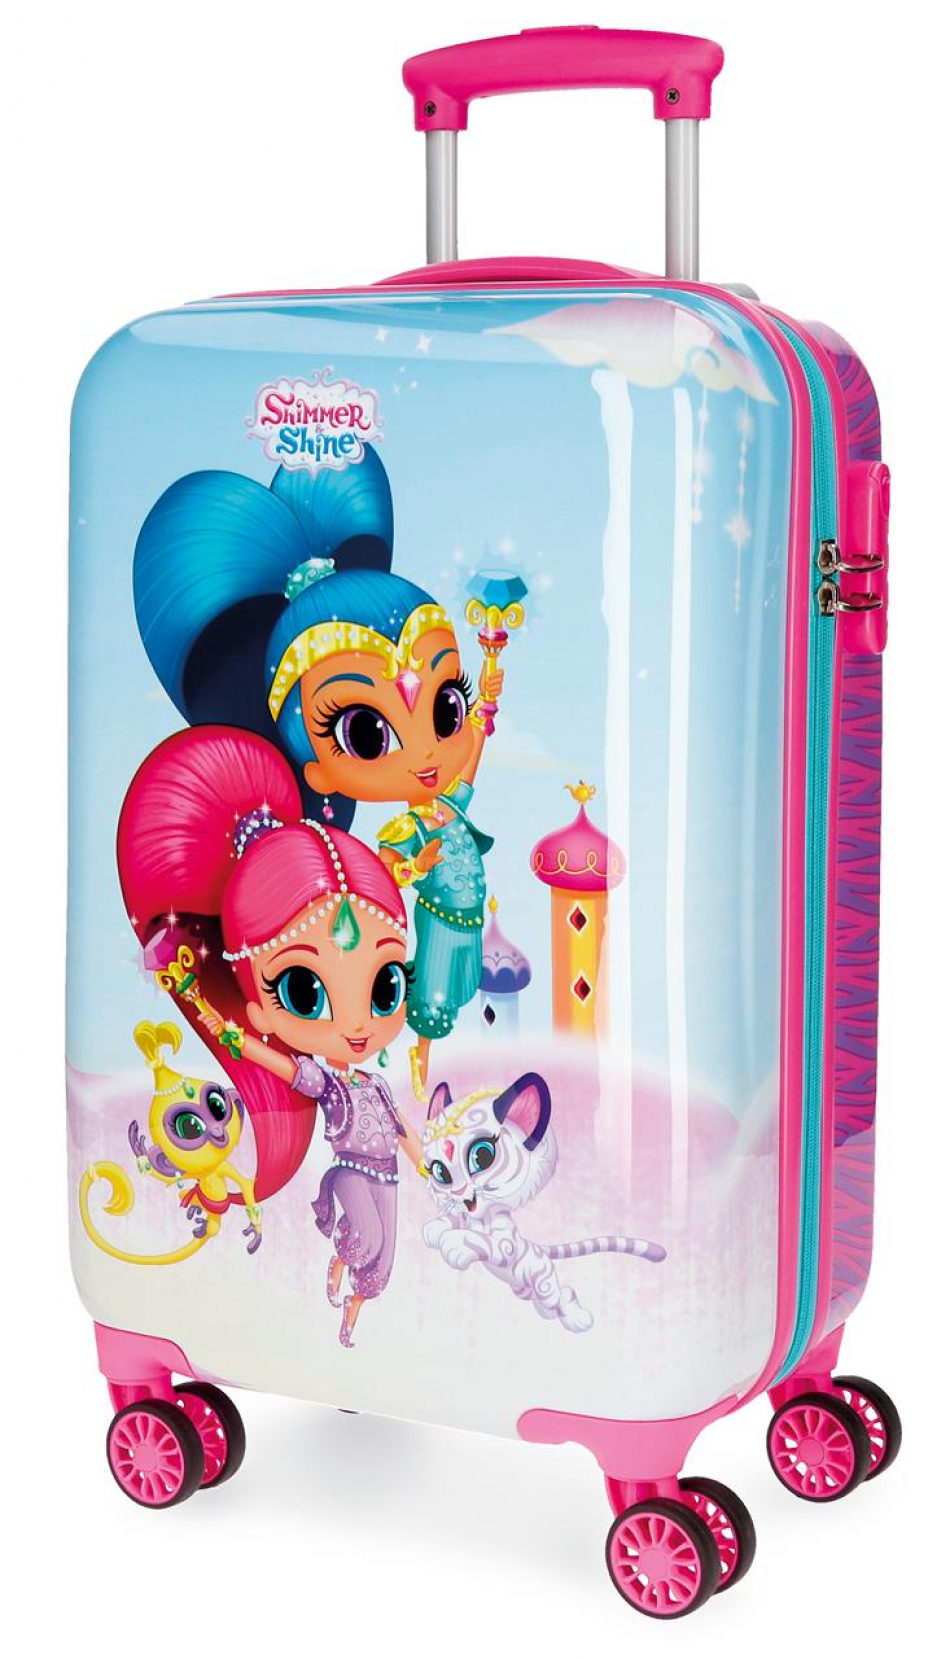 Trolley ABS 55 cm. 4 ruedas Shimmer y Shine Twinsies